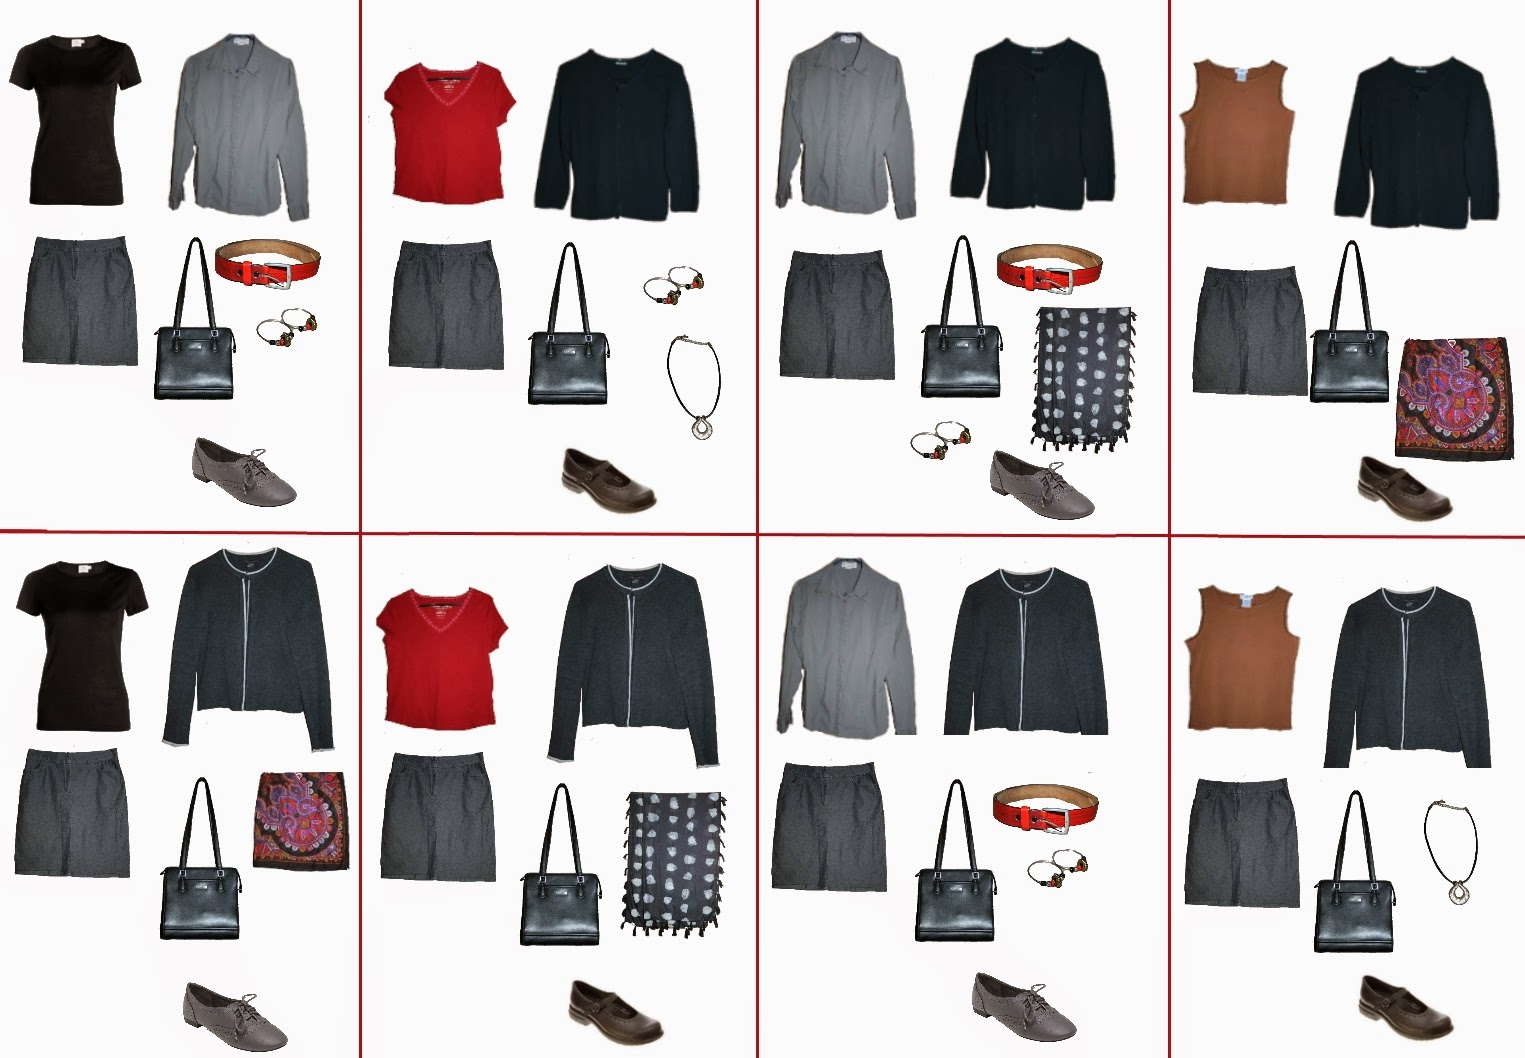 Kind of Capsule Wardrobe